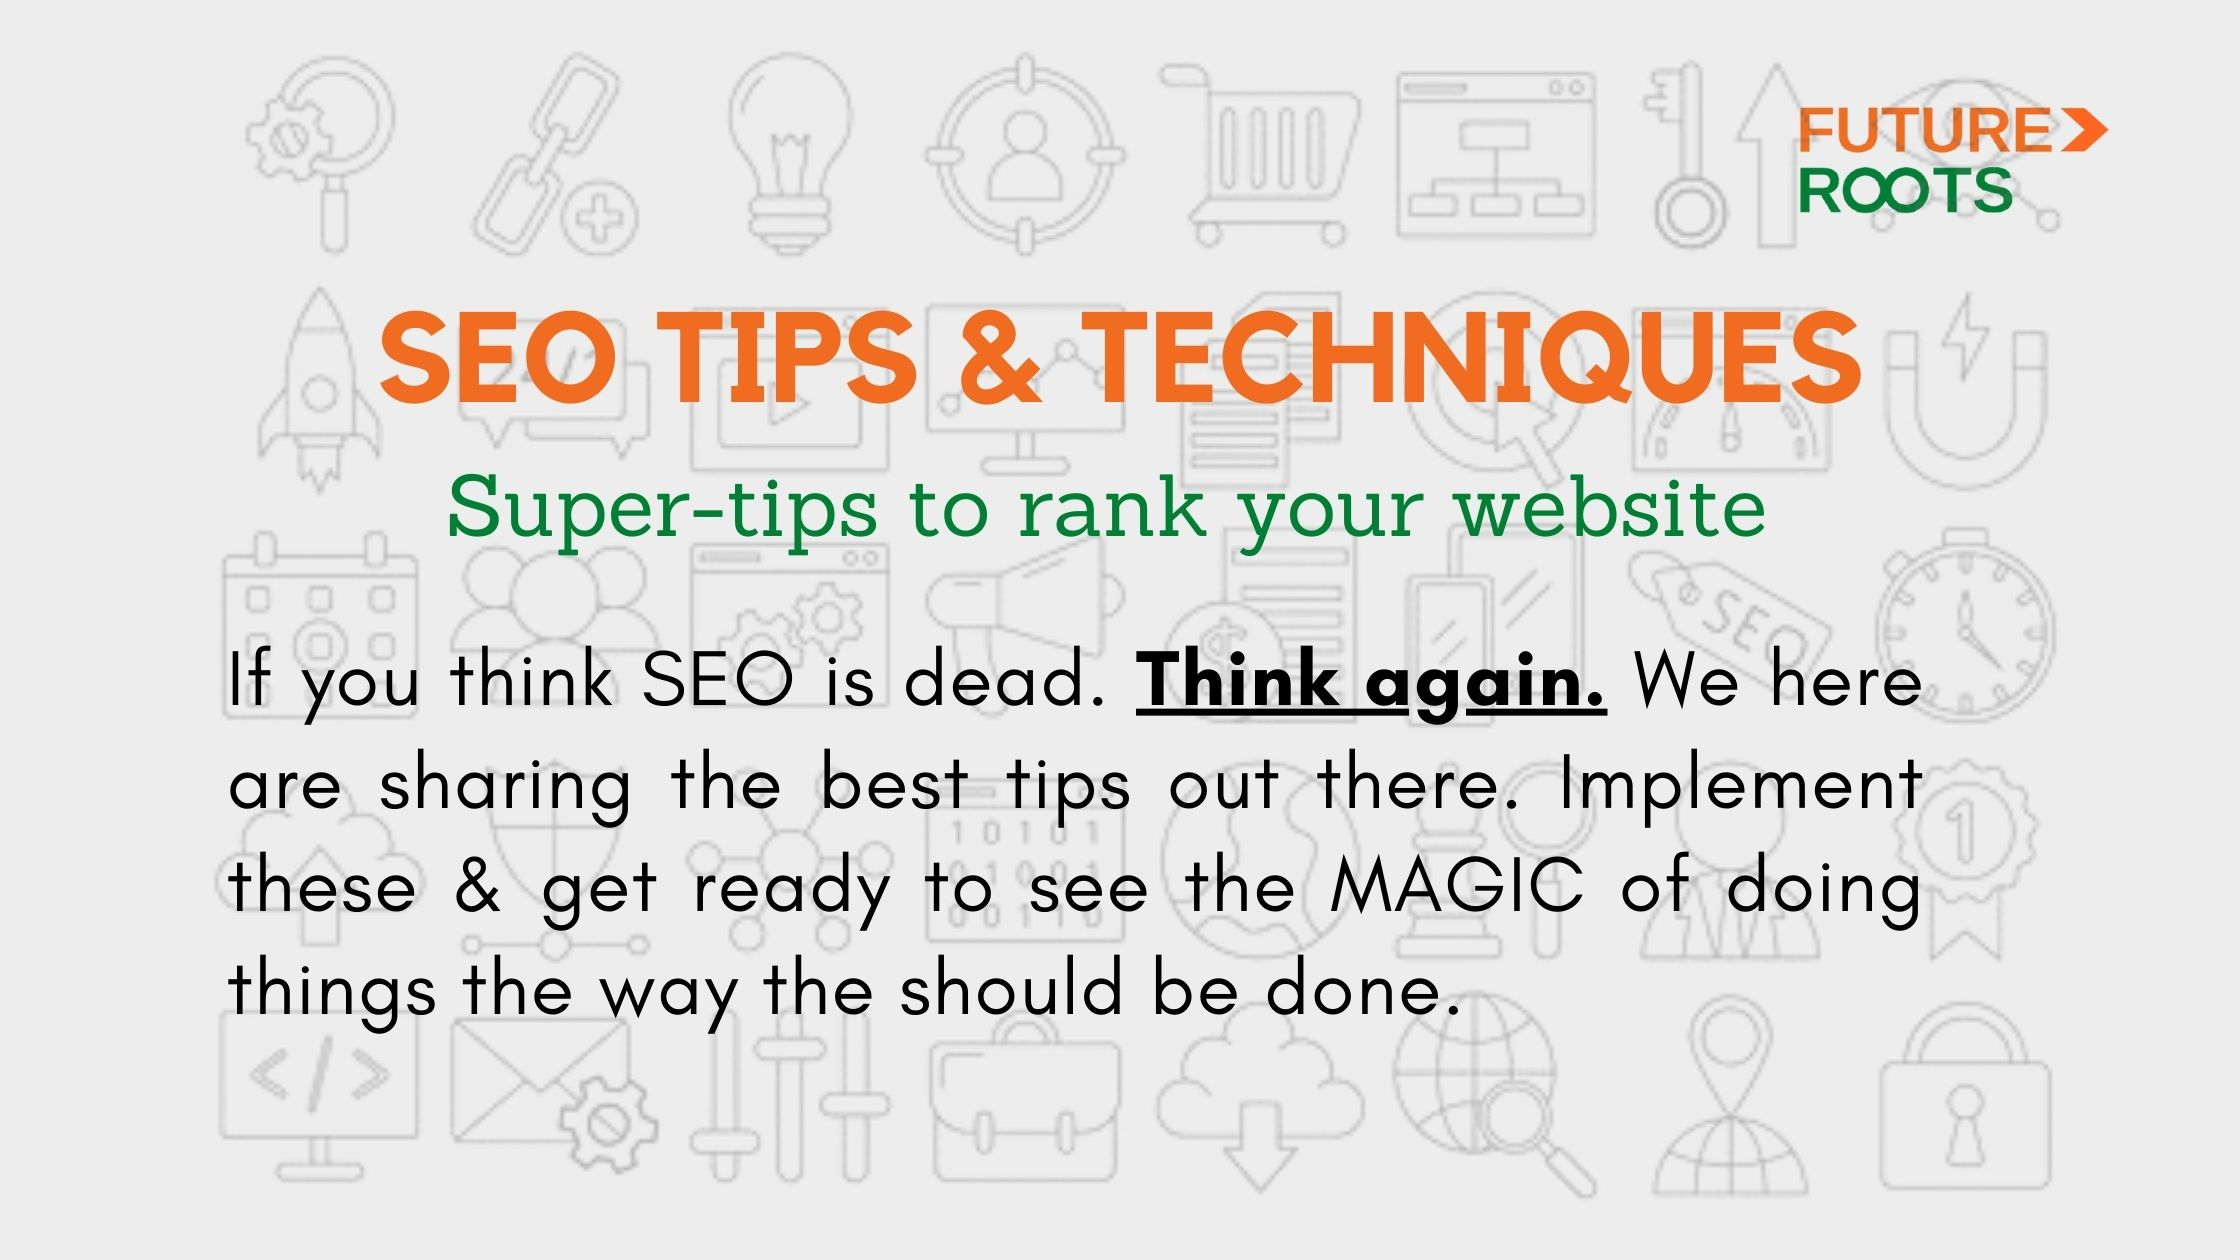 We are sharing the best seo strategy tips.